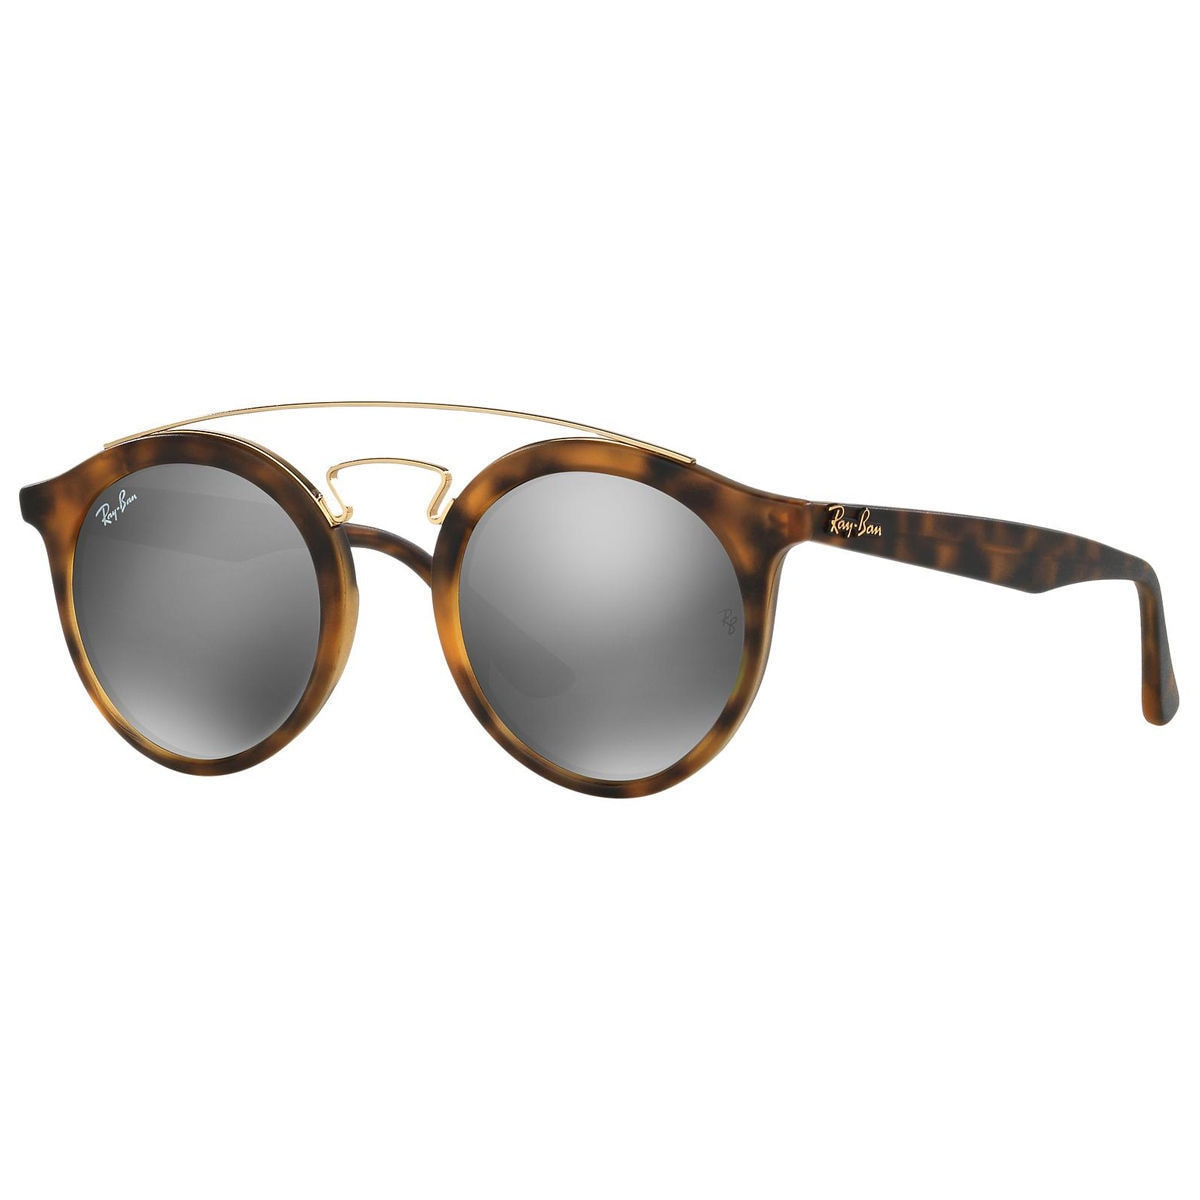 6449f39500 Shop Ray-Ban Unisex RB4256 60926G Gatsby I Tortoise Frame Grey Mirror 46mm  Lens Sunglasses - Ships To Canada - Overstock - 14335642